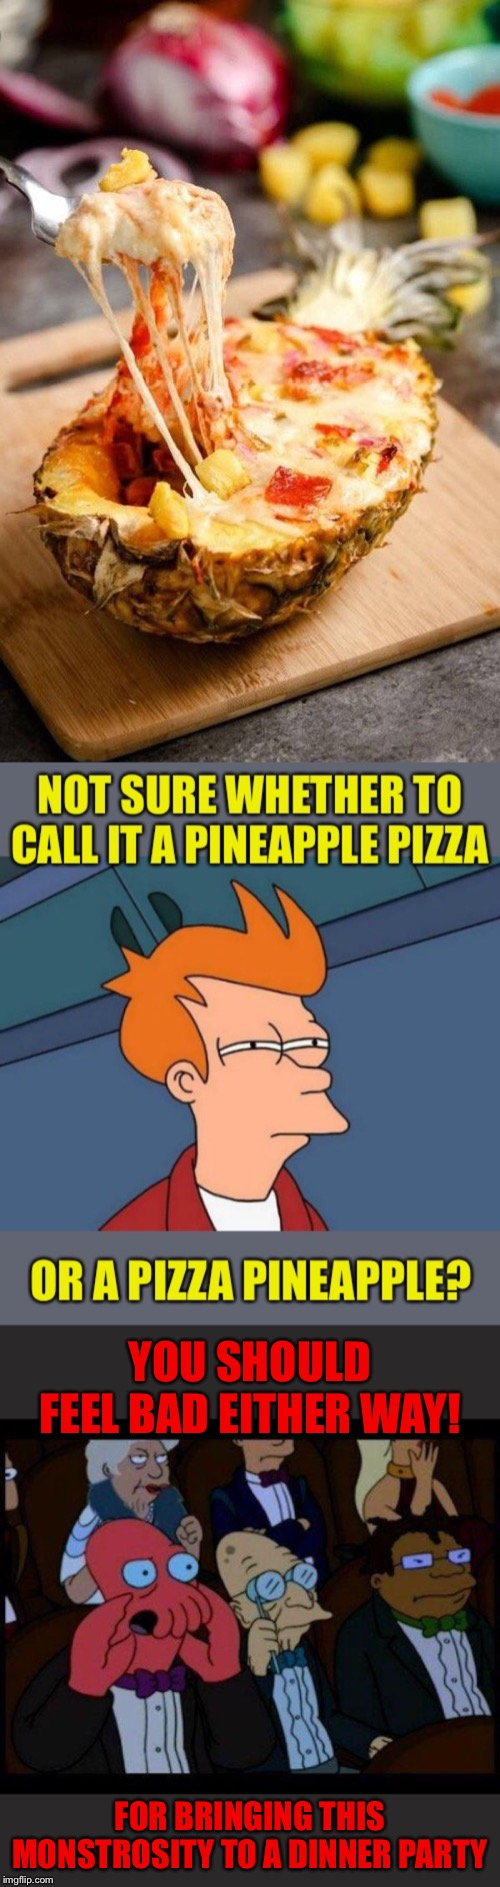 Blackjack and hookers would have sufficed | YOU SHOULD FEEL BAD EITHER WAY! FOR BRINGING THIS MONSTROSITY TO A DINNER PARTY | image tagged in memes,you should feel bad zoidberg,futurama fry,pineapple pizza,or is it,pizza pineapple | made w/ Imgflip meme maker